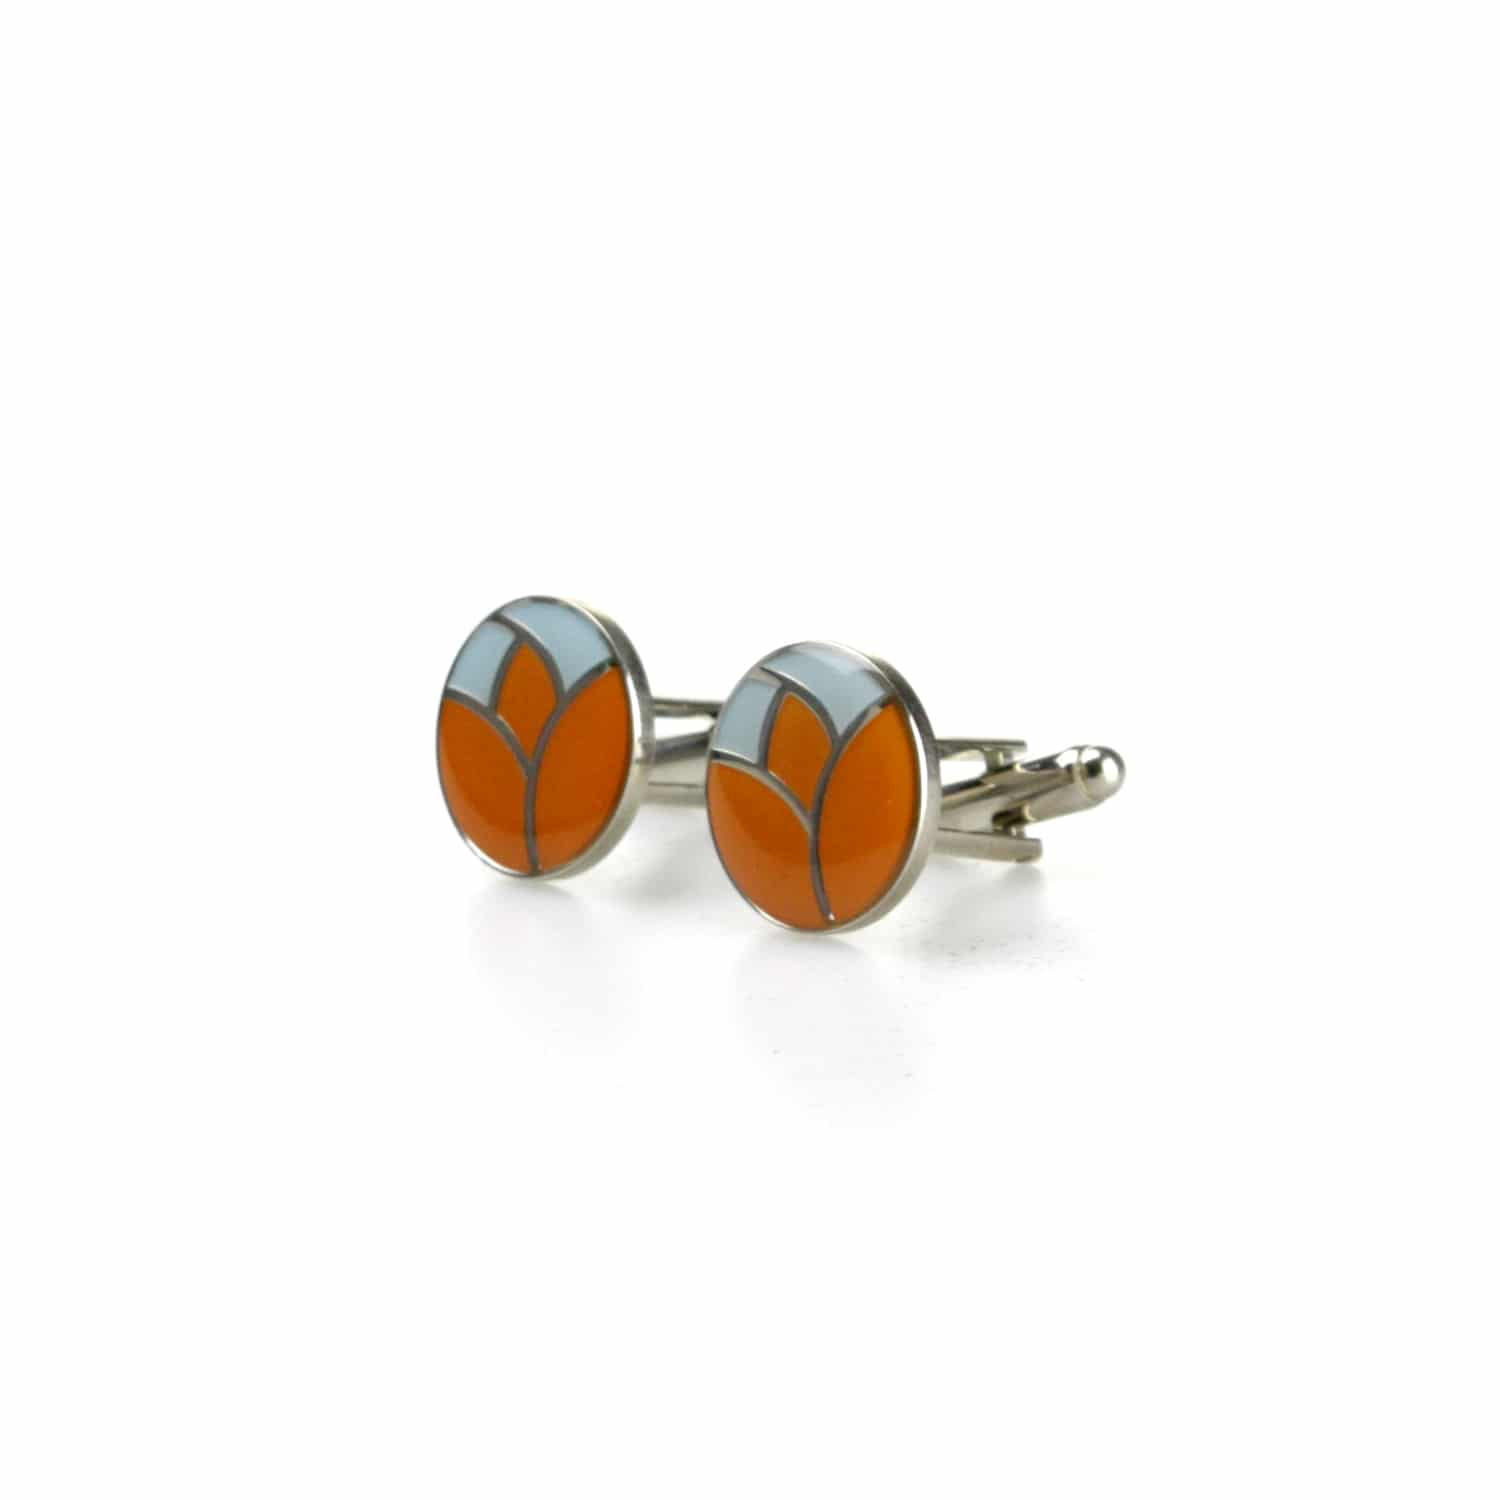 Customized Coloured Cufflinks with company logo